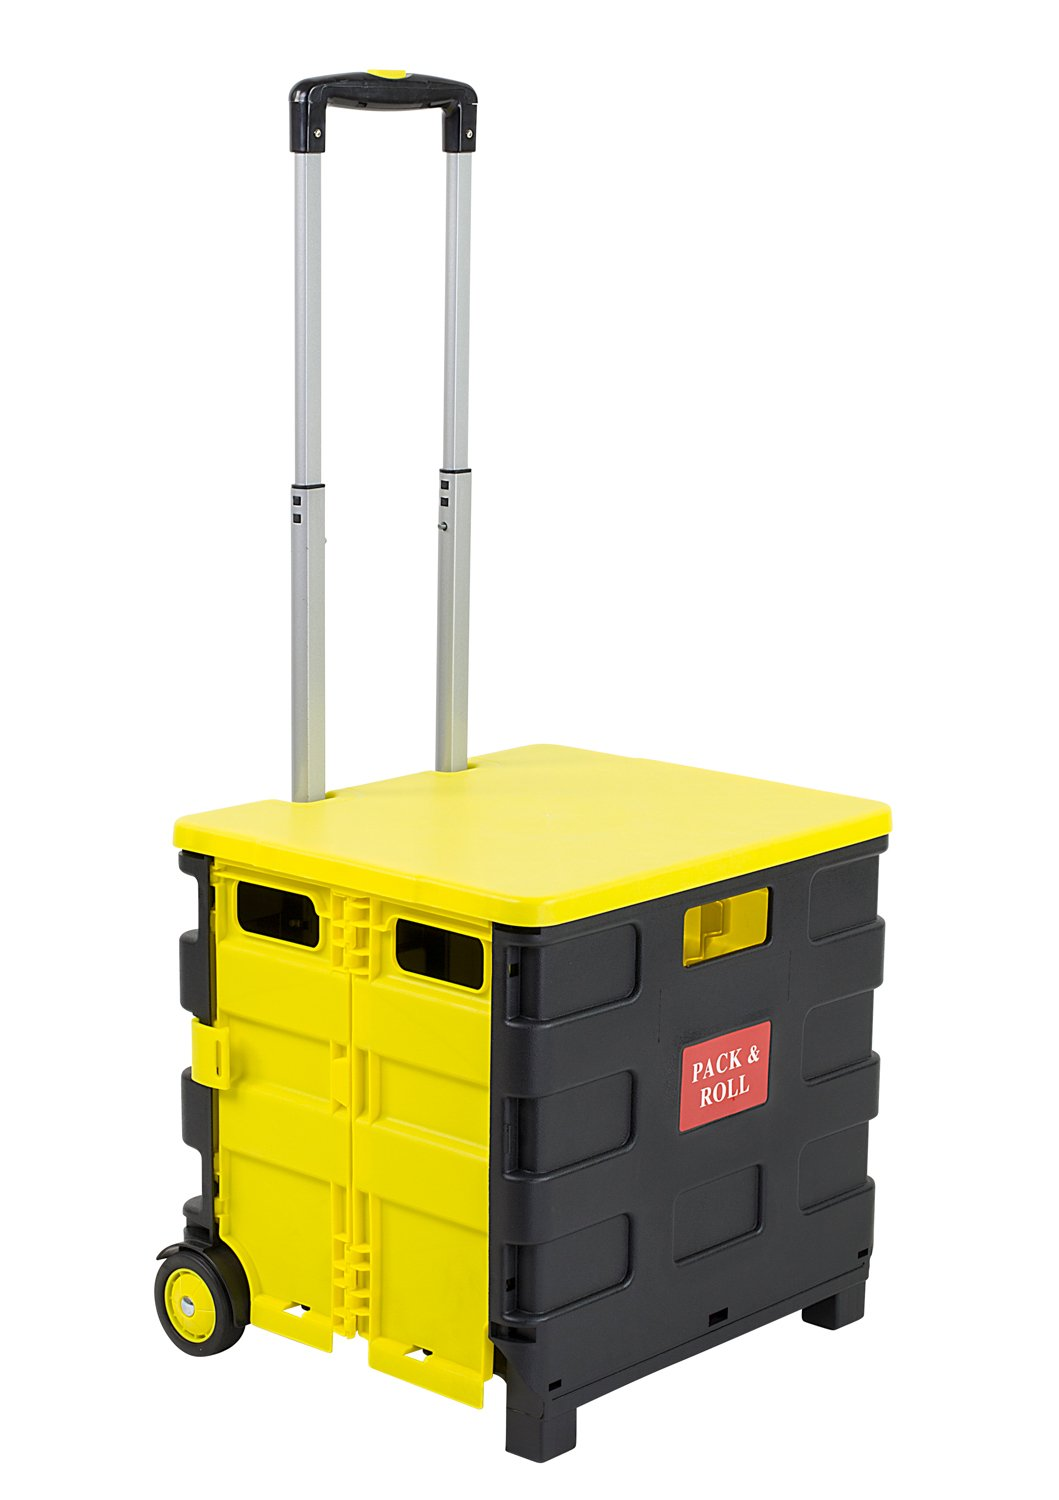 Mount-It! Rolling Utility Cart, Folding and Collapsible Hand Crate with Lid on Wheels, 55 lbs Capacity by Mount-It!